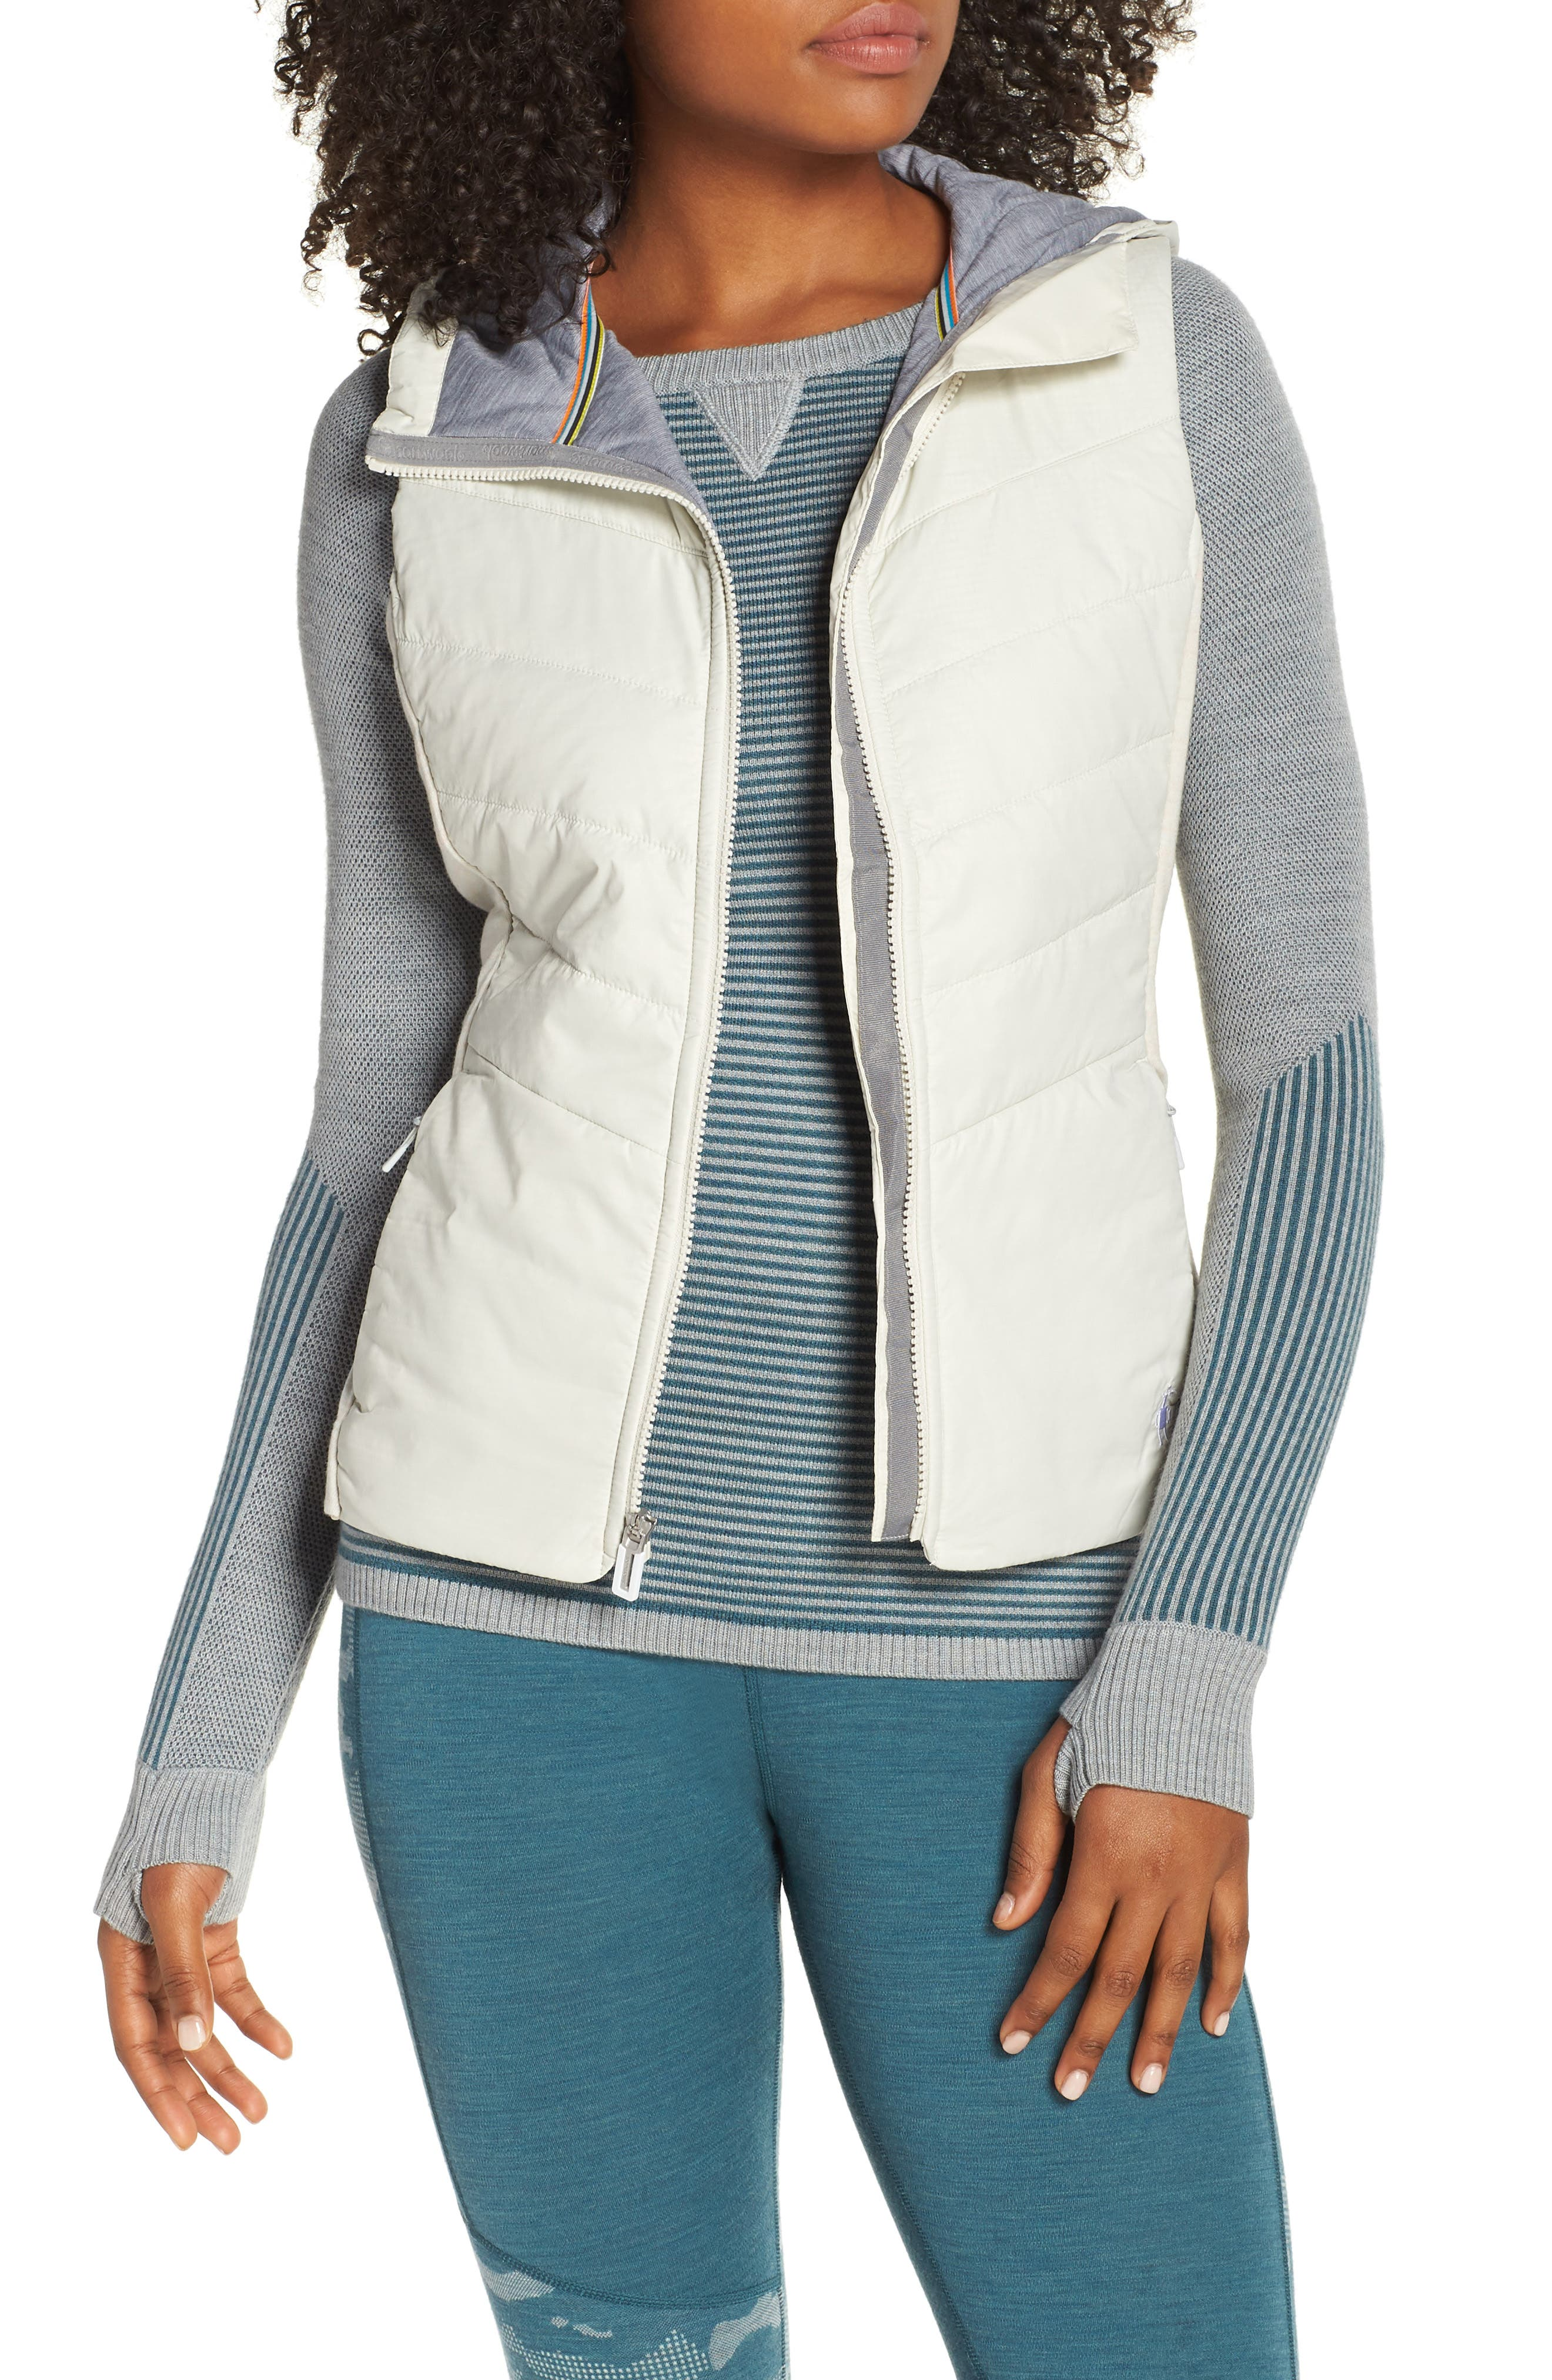 Smartloft 60 Insulated Hooded Vest,                             Main thumbnail 1, color,                             SILVER BIRCH